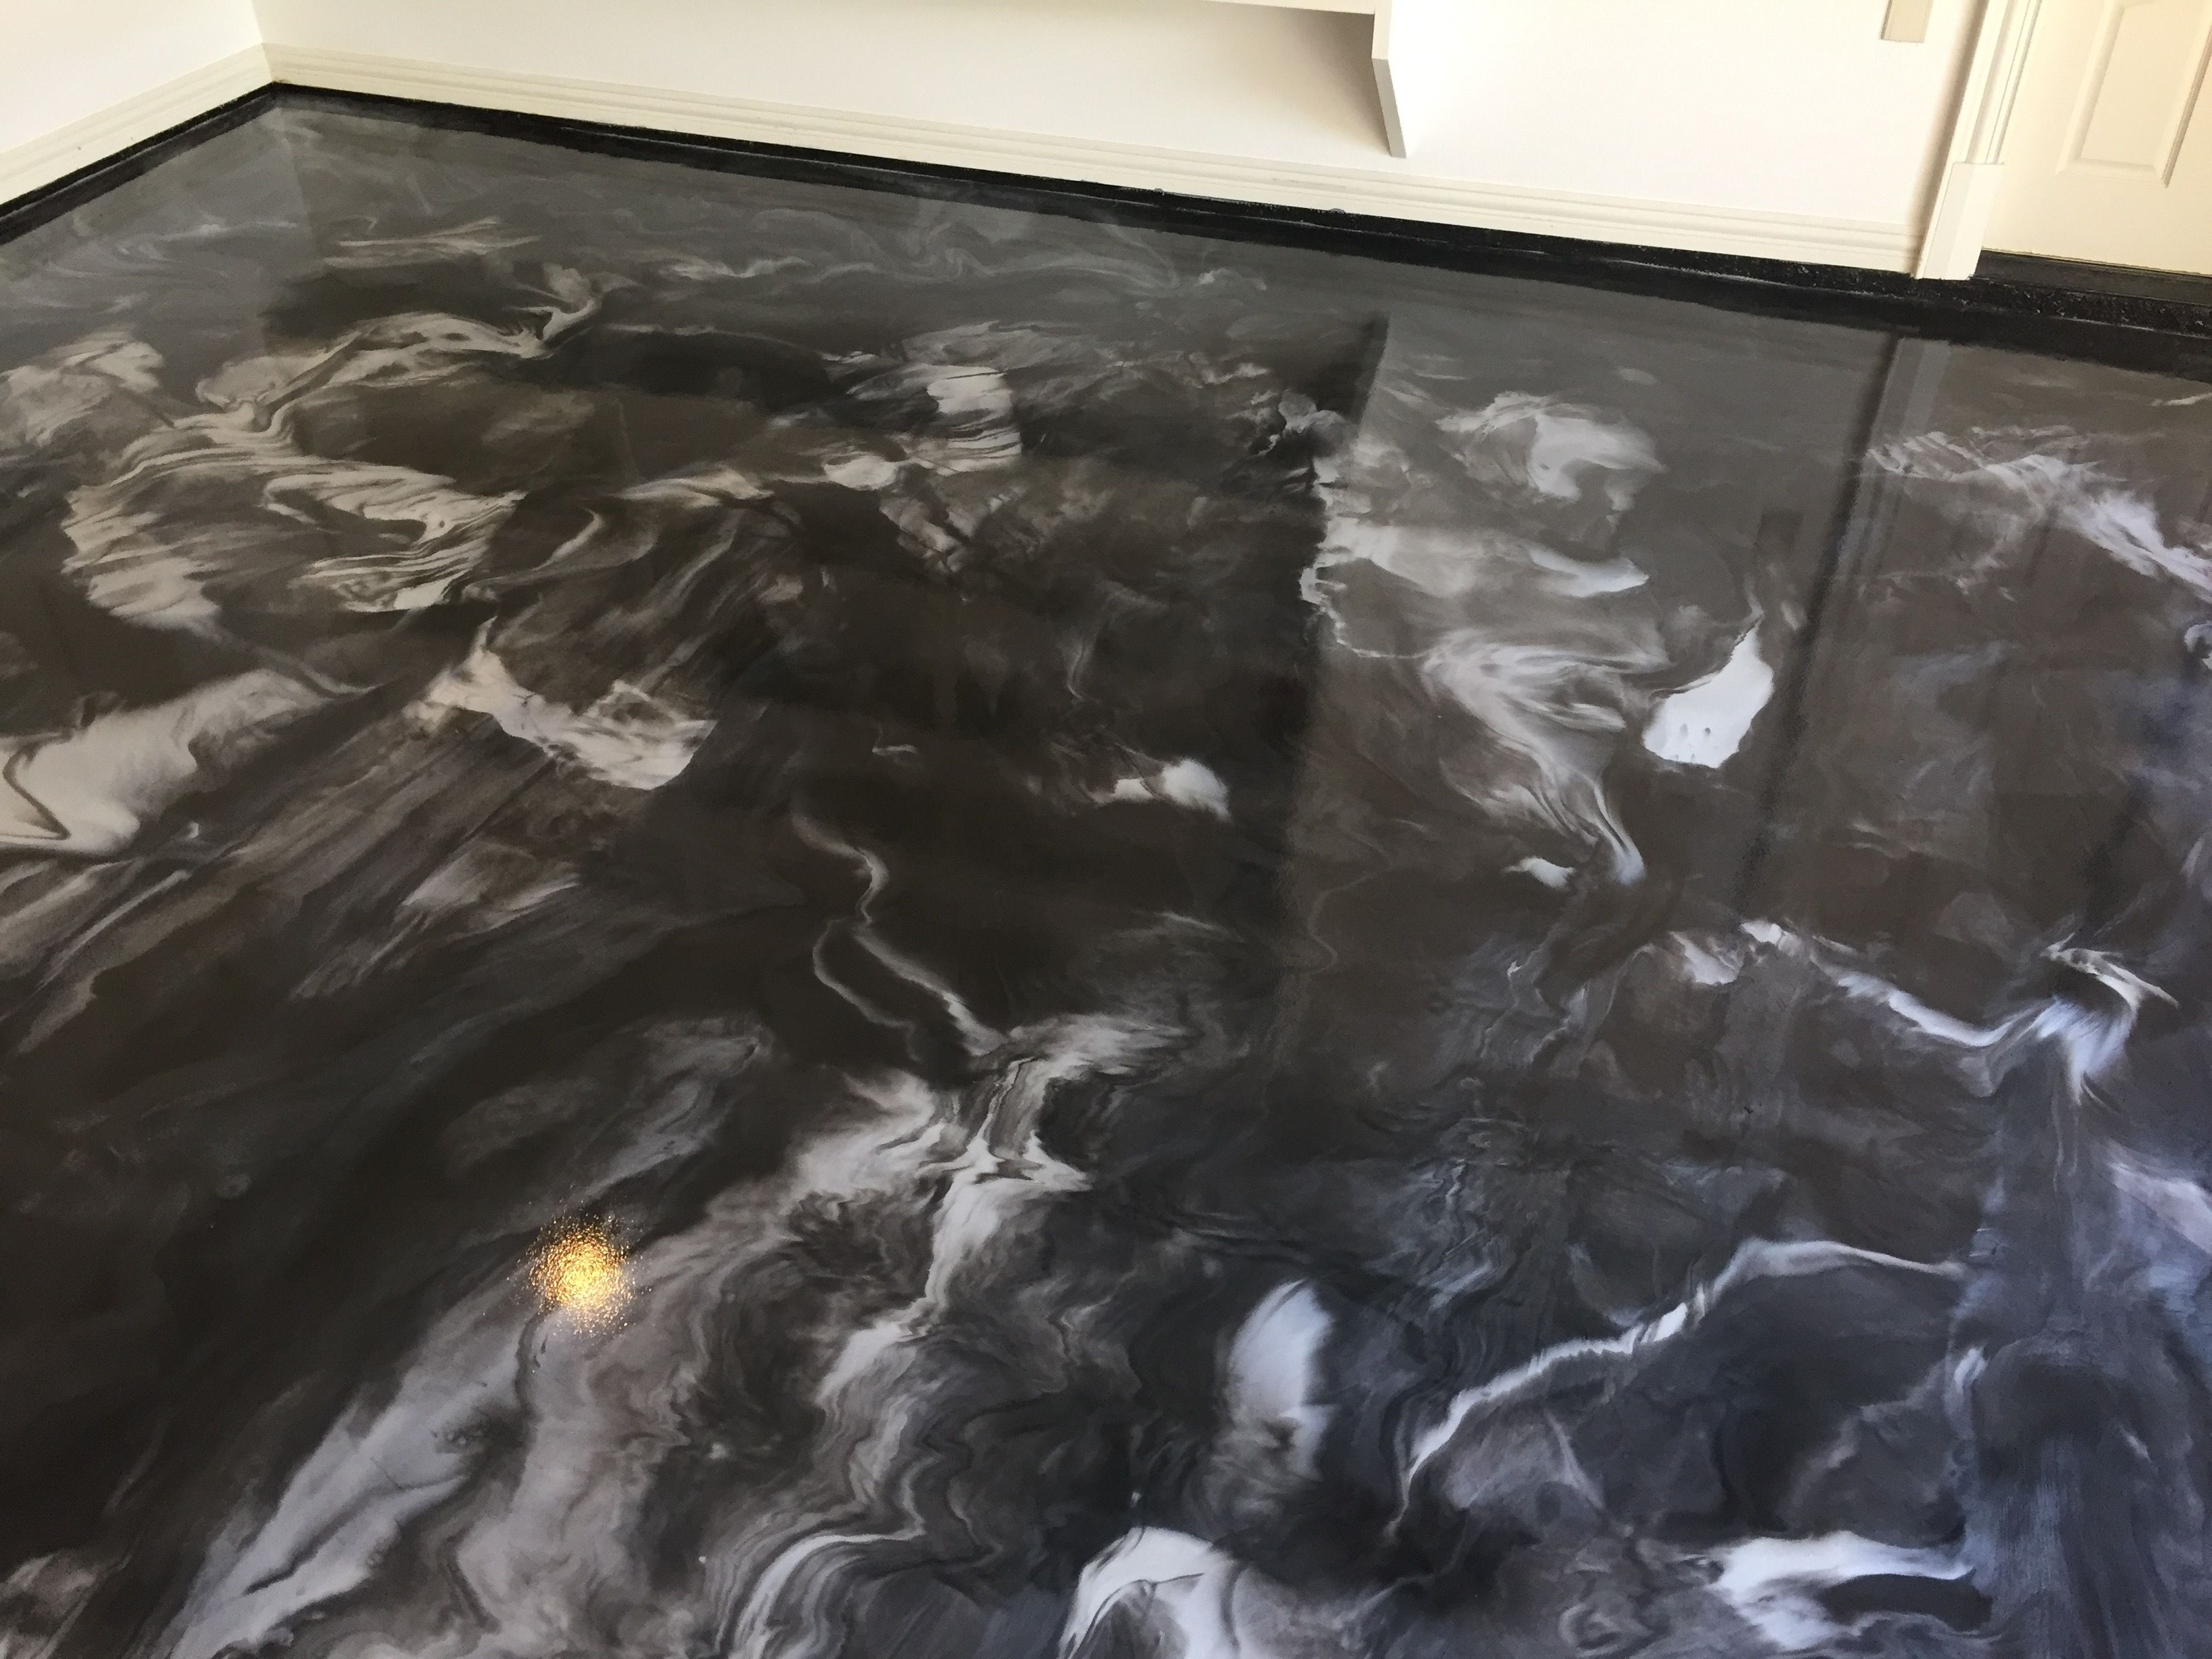 Add the wow factor to your garage with one of our metallic epoxy